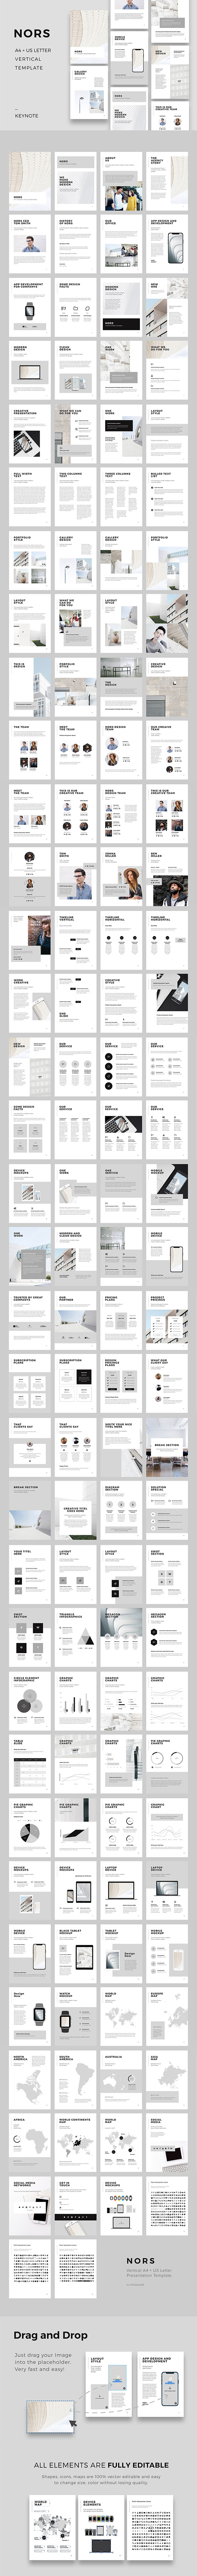 NORS A4 US Letter Vertical Keynote Template - Creative Keynote Templates